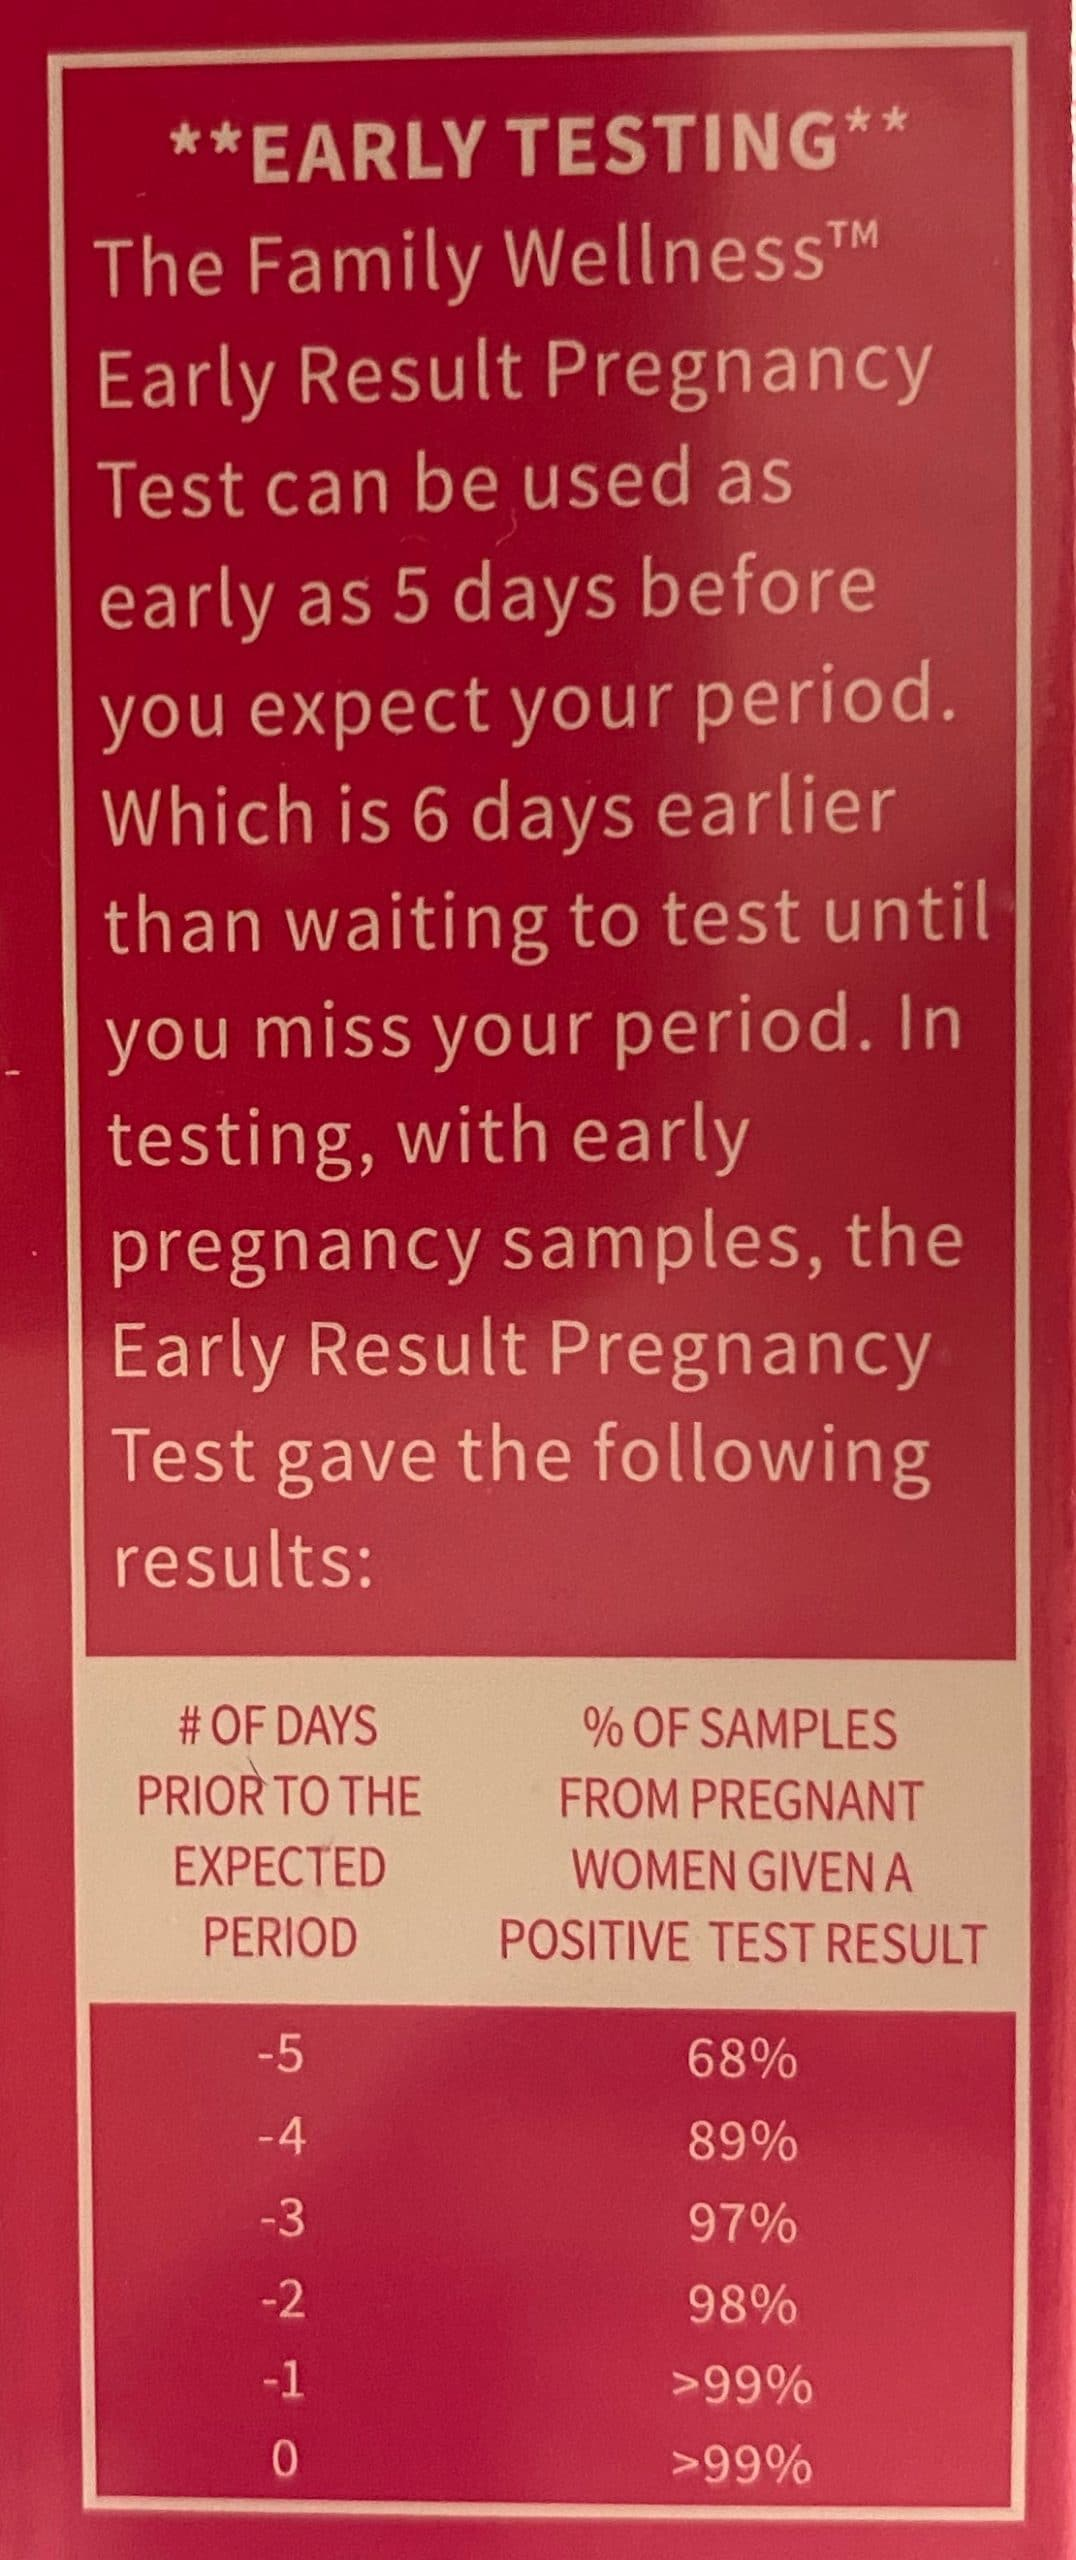 How early can I test with the Family Wellness Early Result Pregnancy Test?